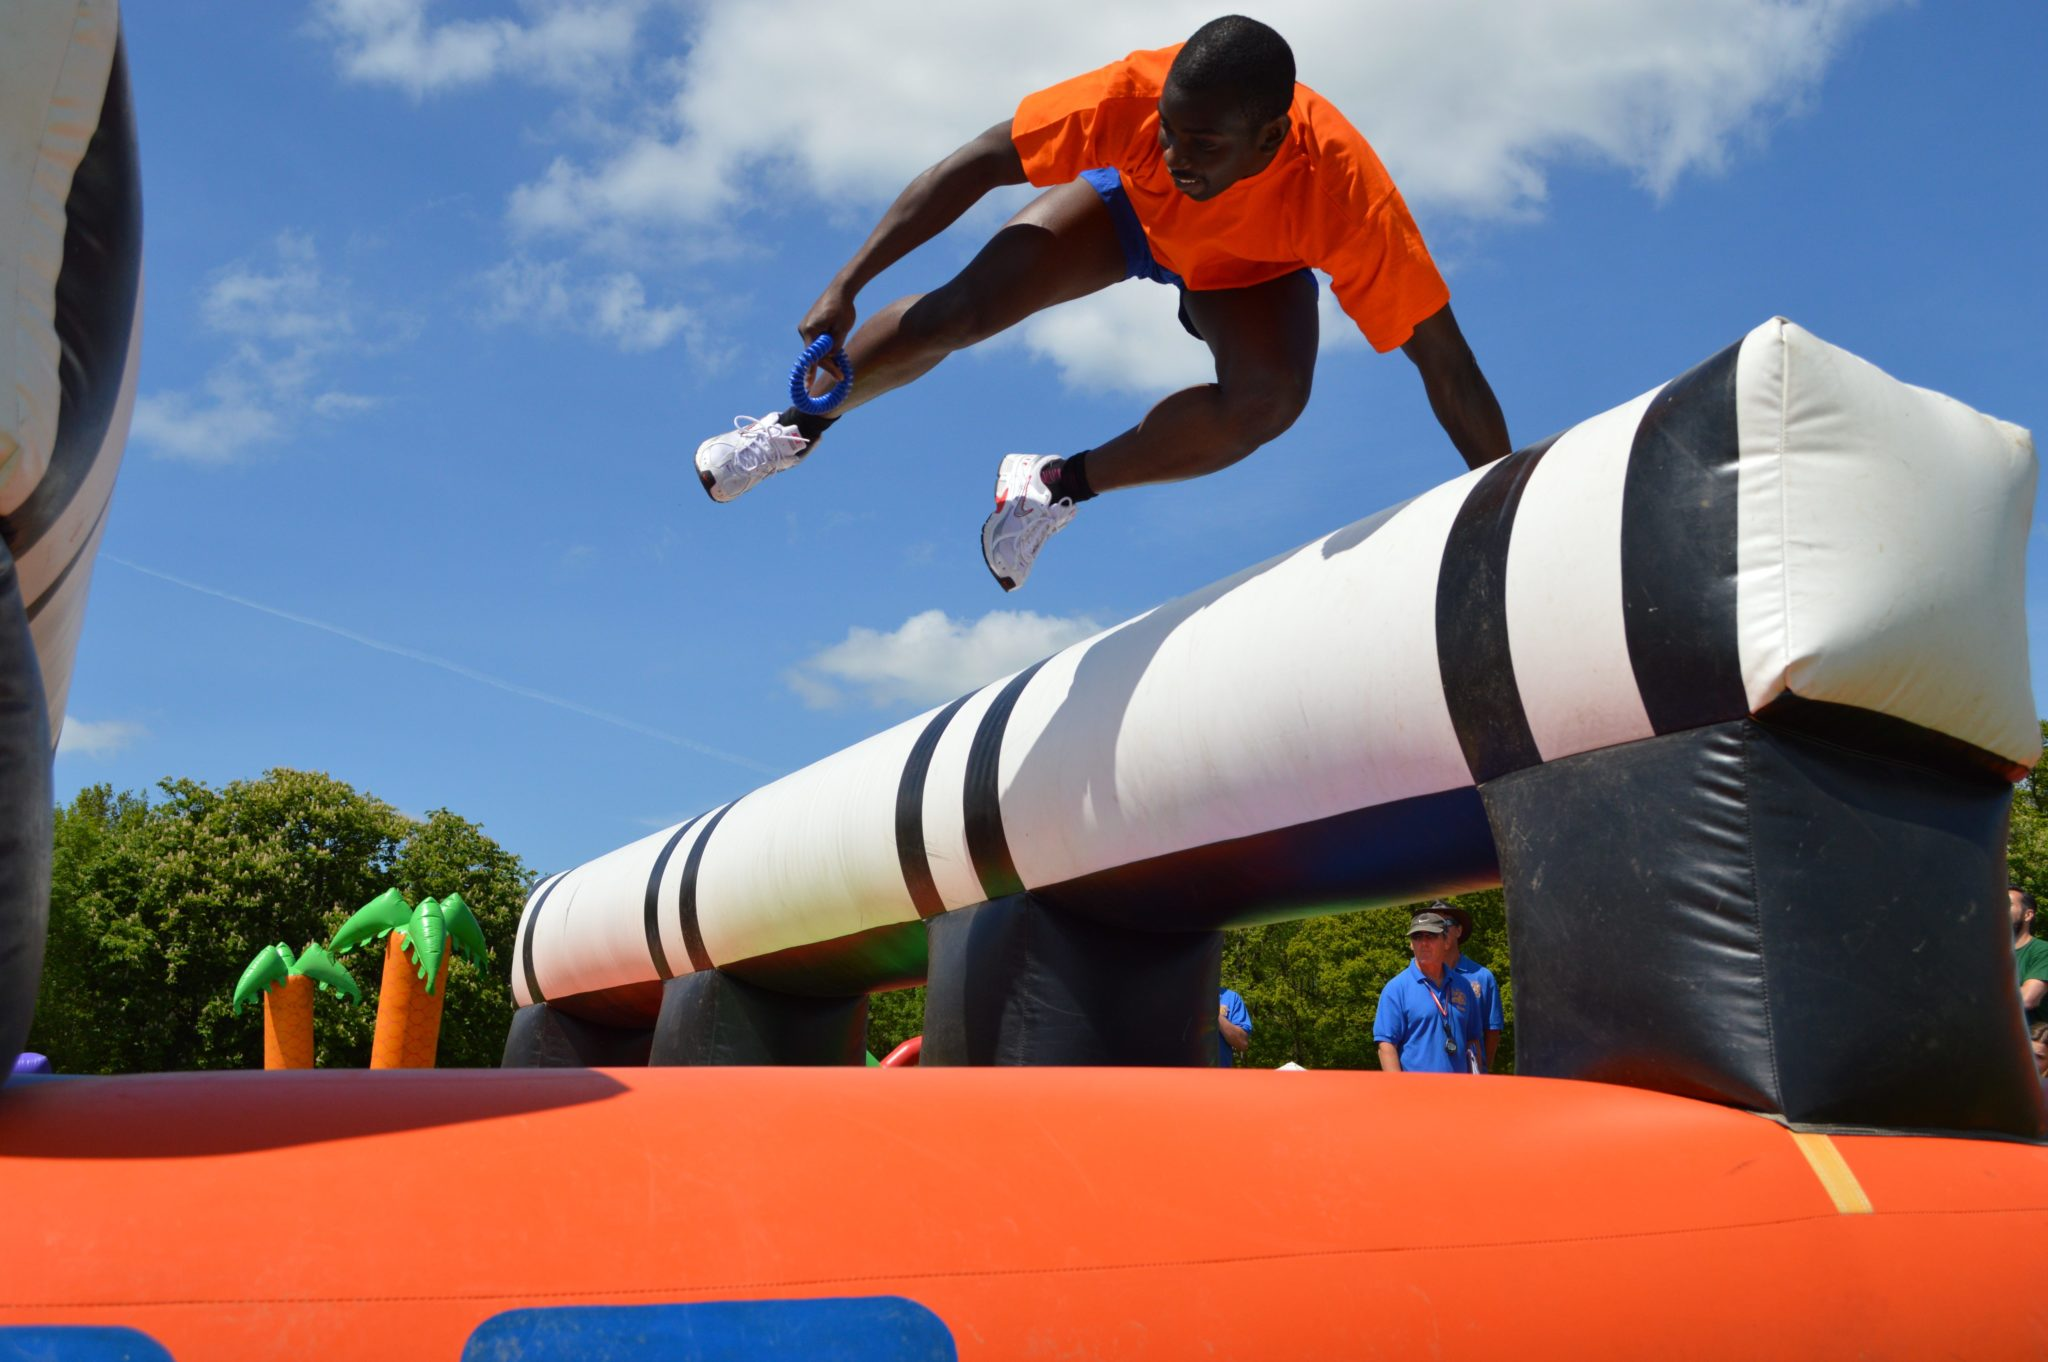 Total Wipeout events